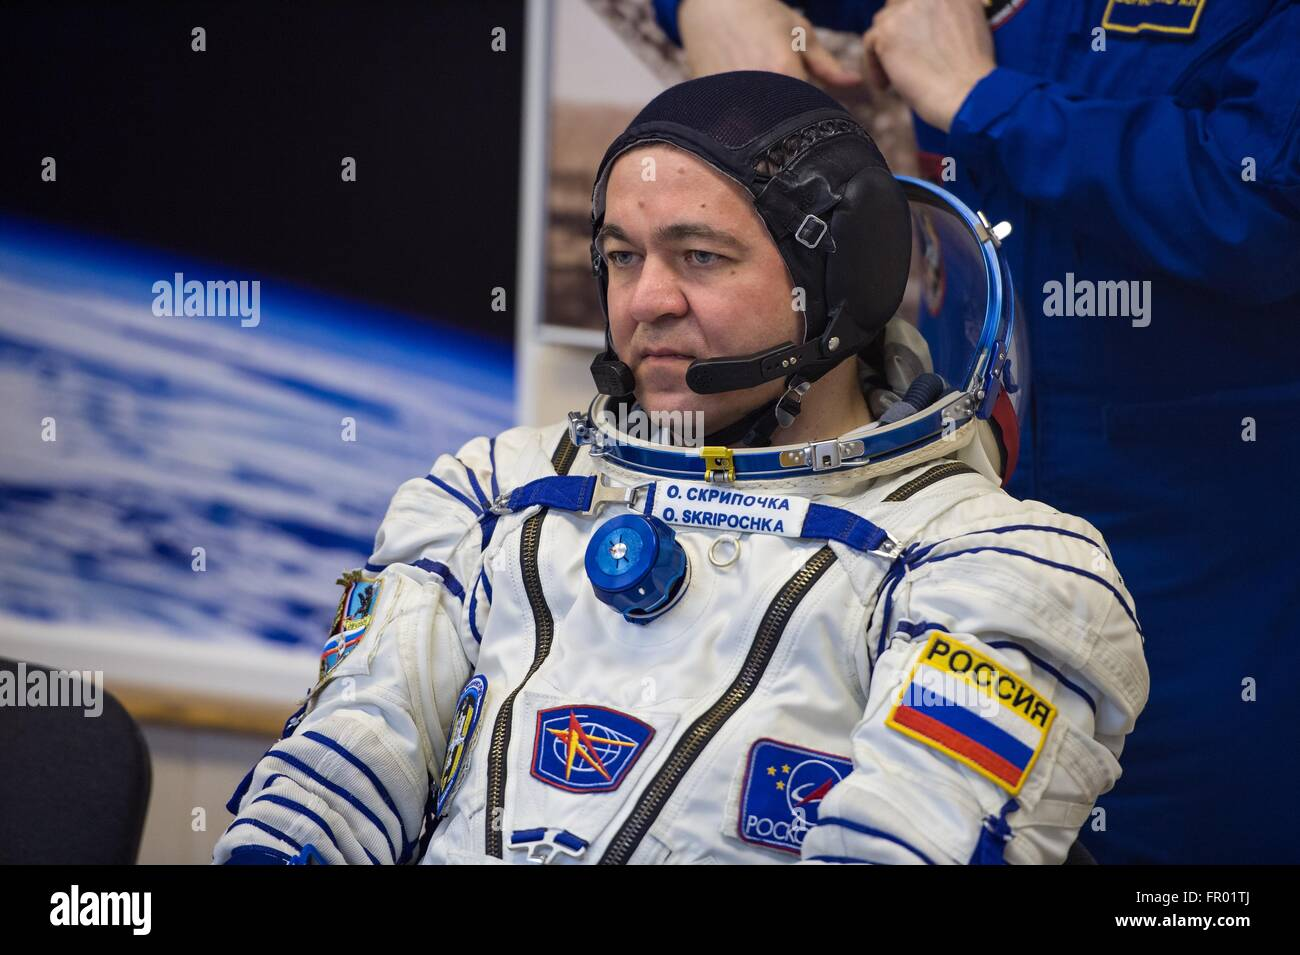 Baikonur, Kazakhstan. 19th Mar, 2016. Russian cosmonaut Oleg Skripochka during final pressure checks on his Russian Stock Photo